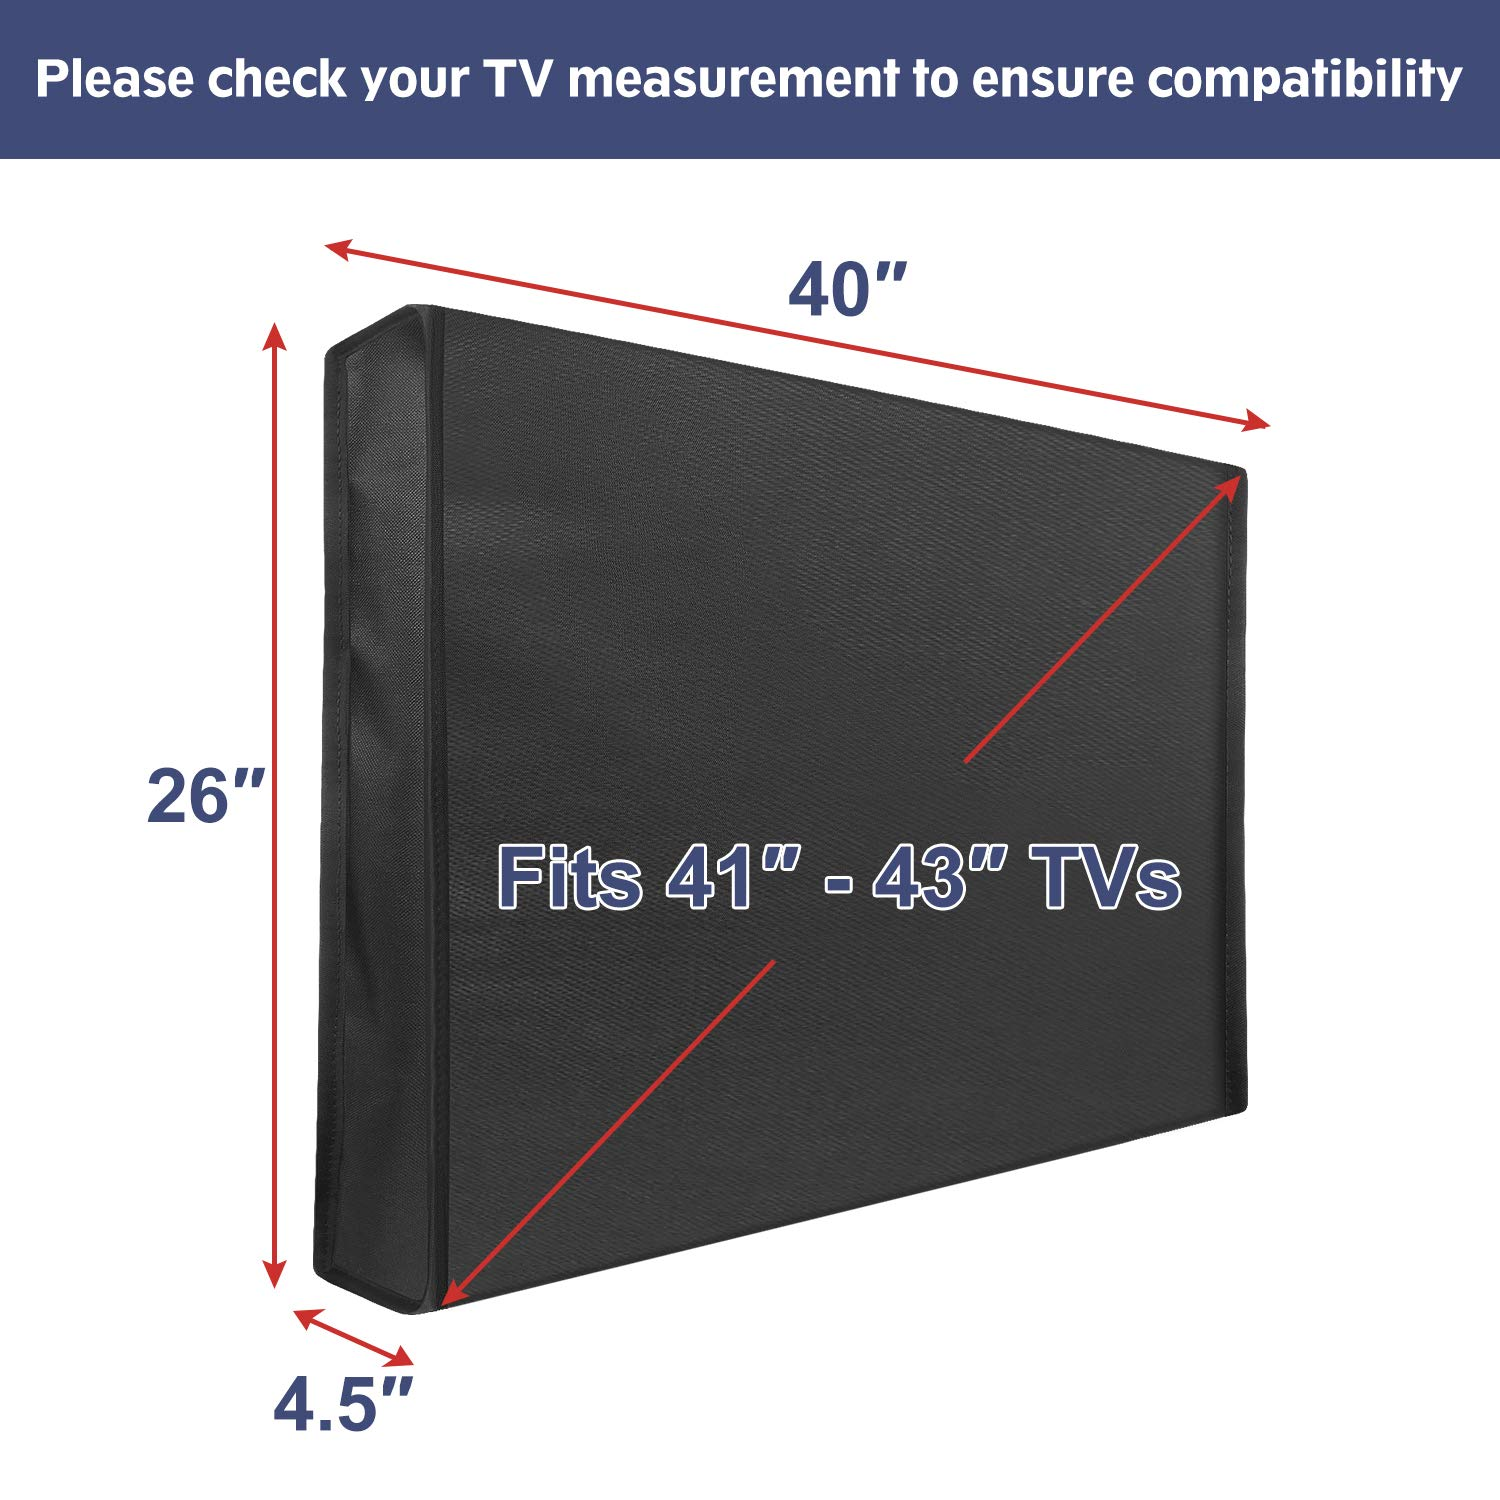 Waterproof and Dustproof TV Screen Protectors with Remote Control Pocket for Outside LED Outdoor TV Cover Weatherproof with Bottom Cover for 30-32 inch TV OLED Flat Screen TVs LCD Mounting Dream